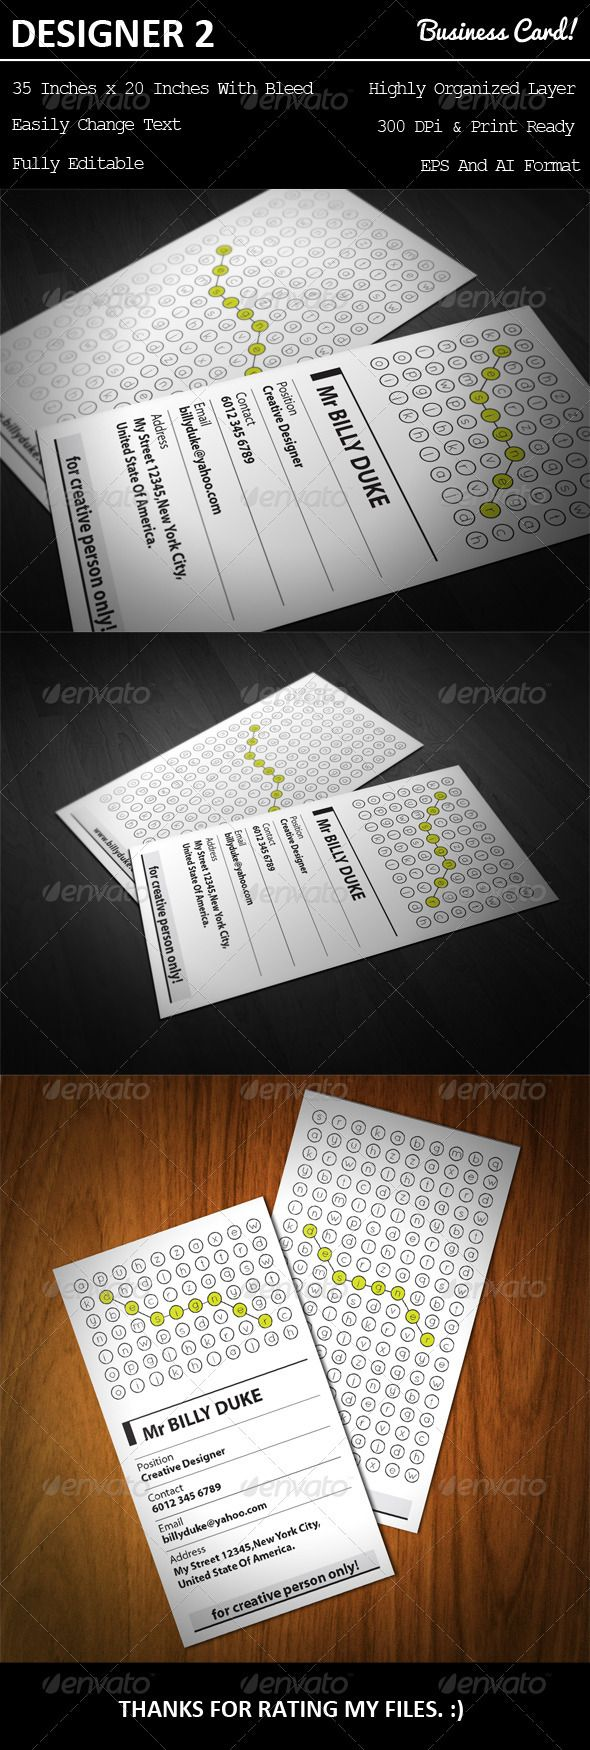 83 best Print Templates images on Pinterest | Print templates, Font ...